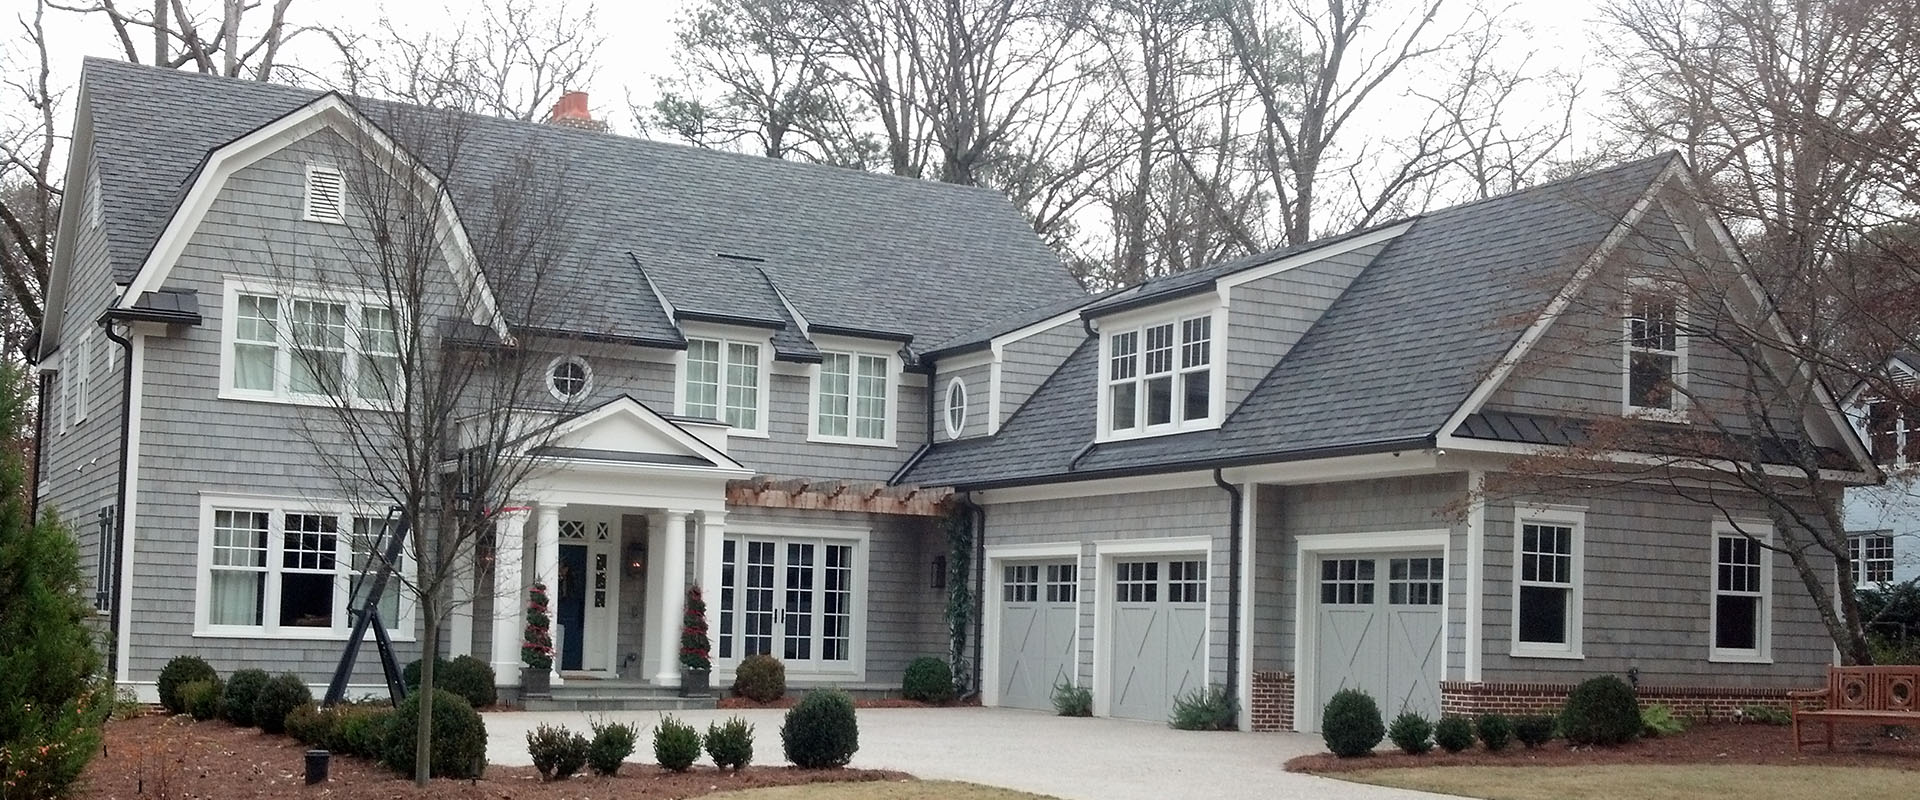 Arc & Angle Home Builders, LLC New Construction, Renovations and Remodeling